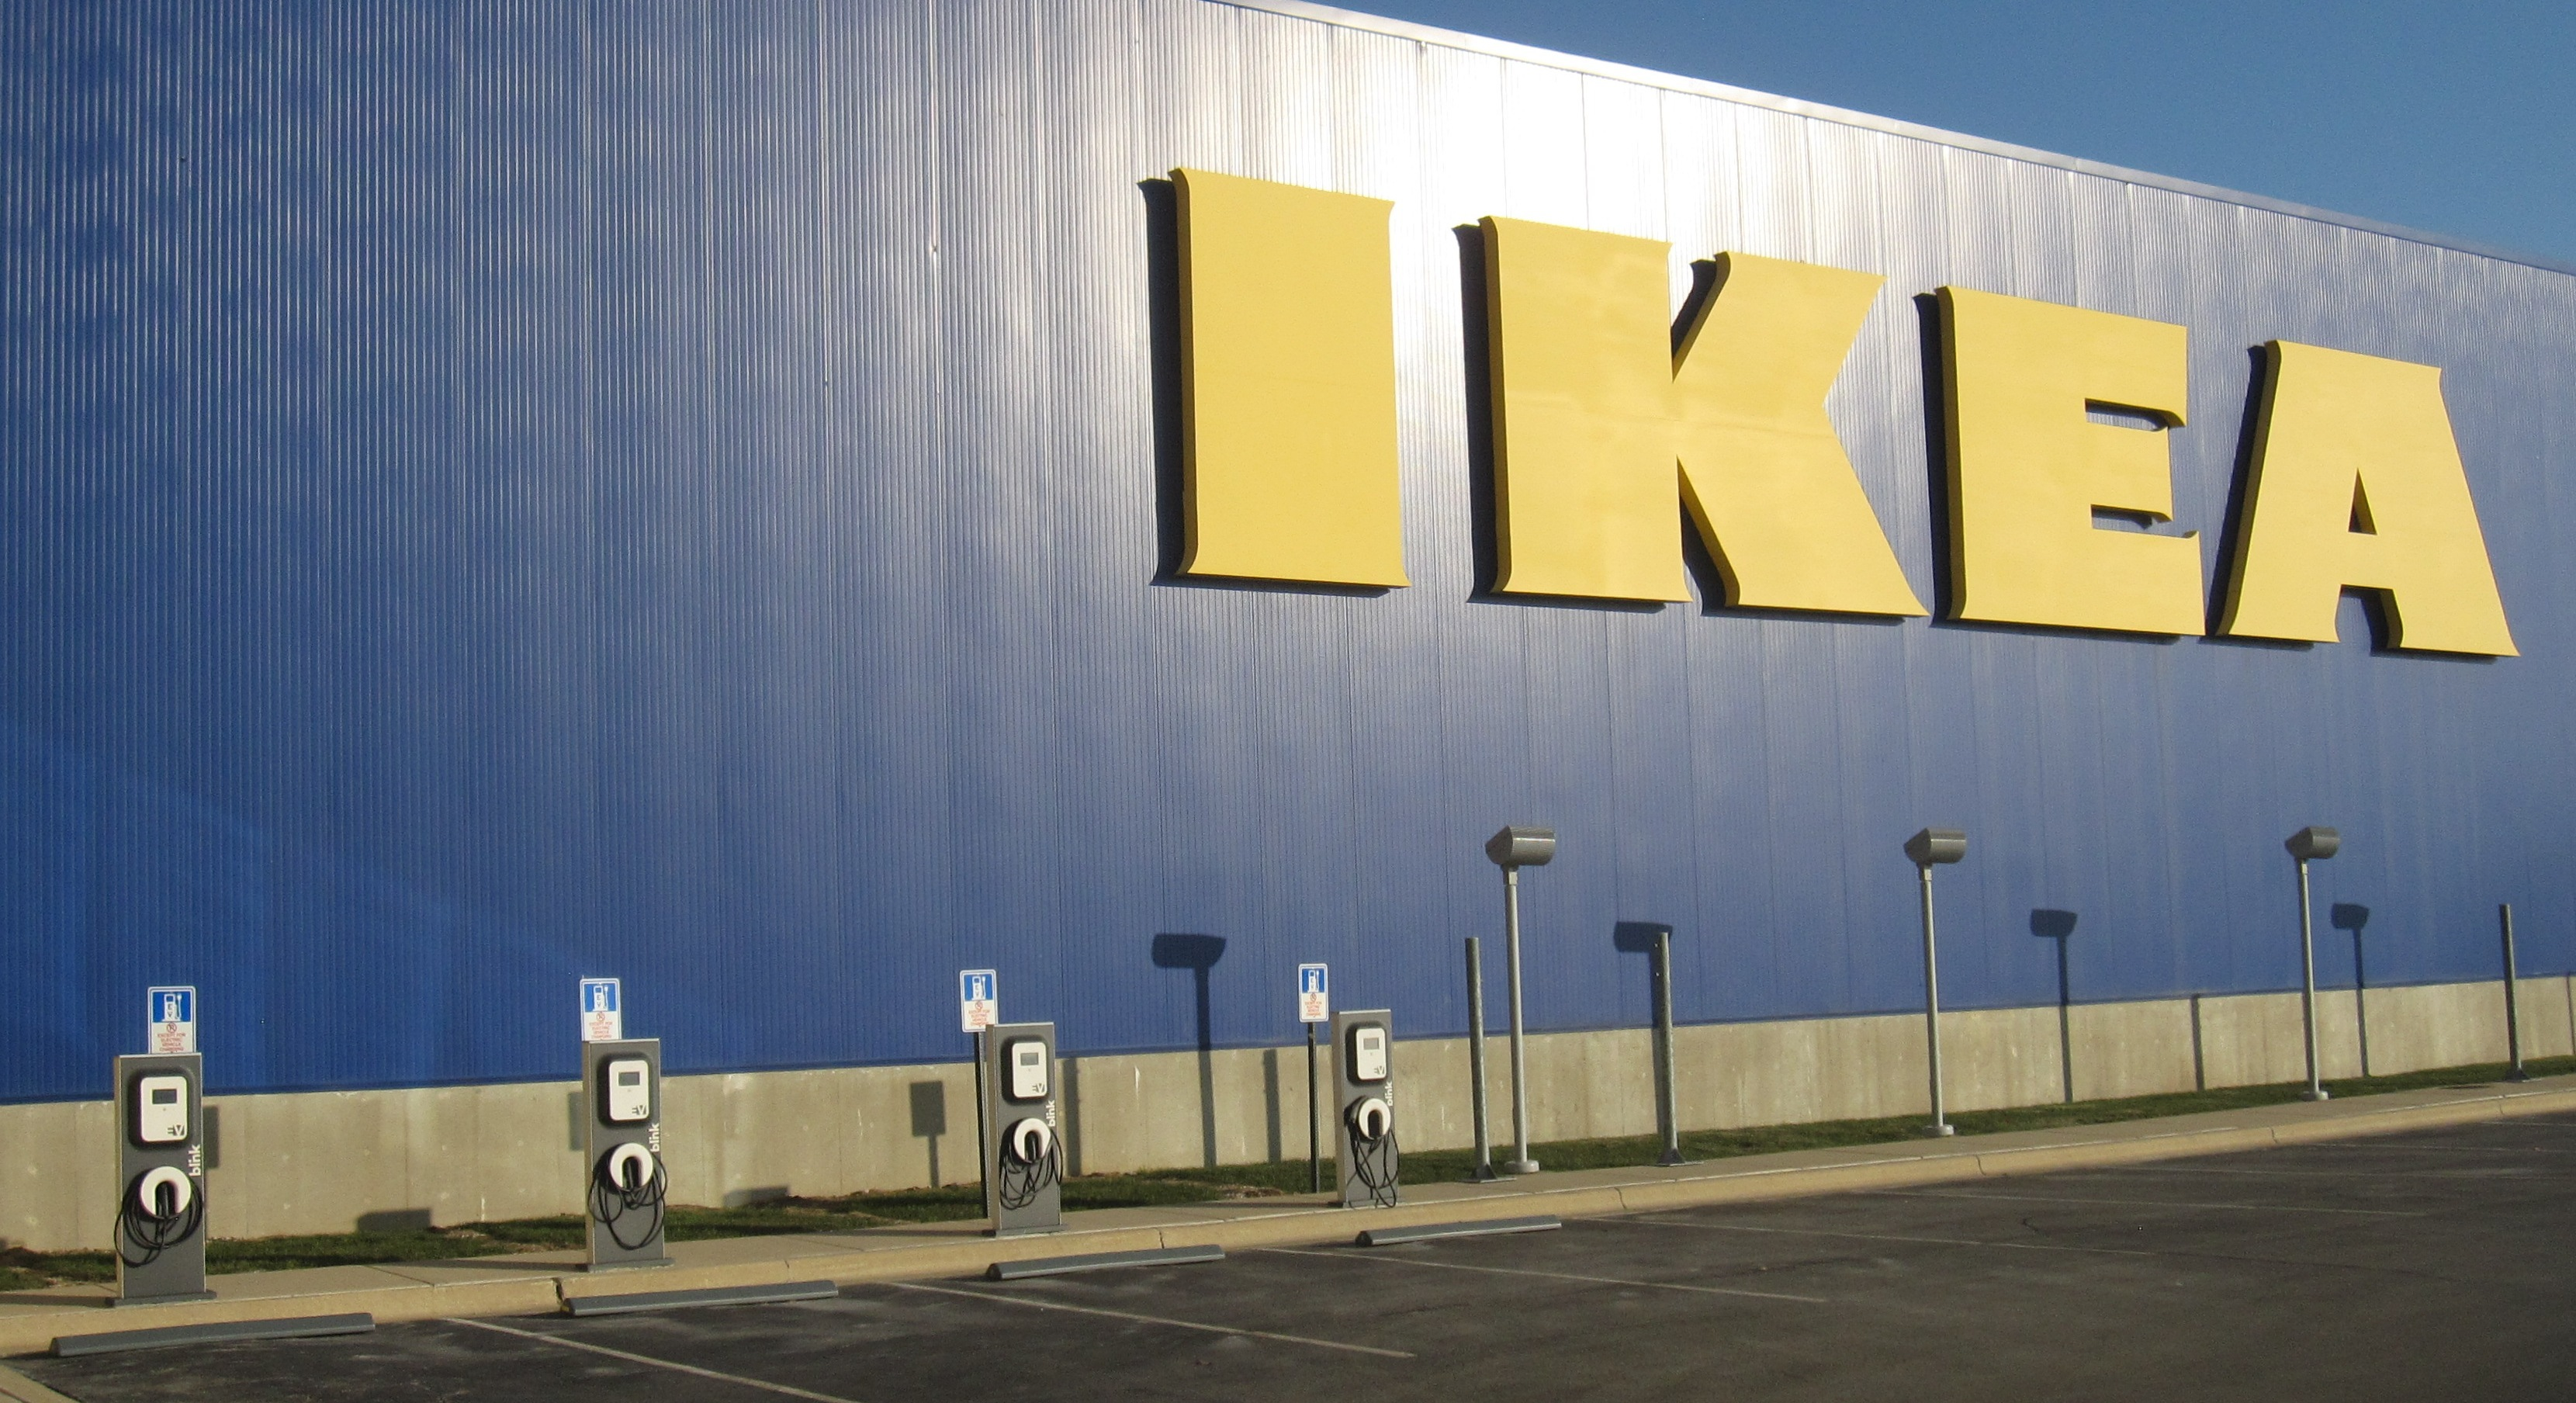 Ikea Plugs In 4 Electric Vehicle Charging Stations At Chicago Area Bolingbrook Il Business Wire